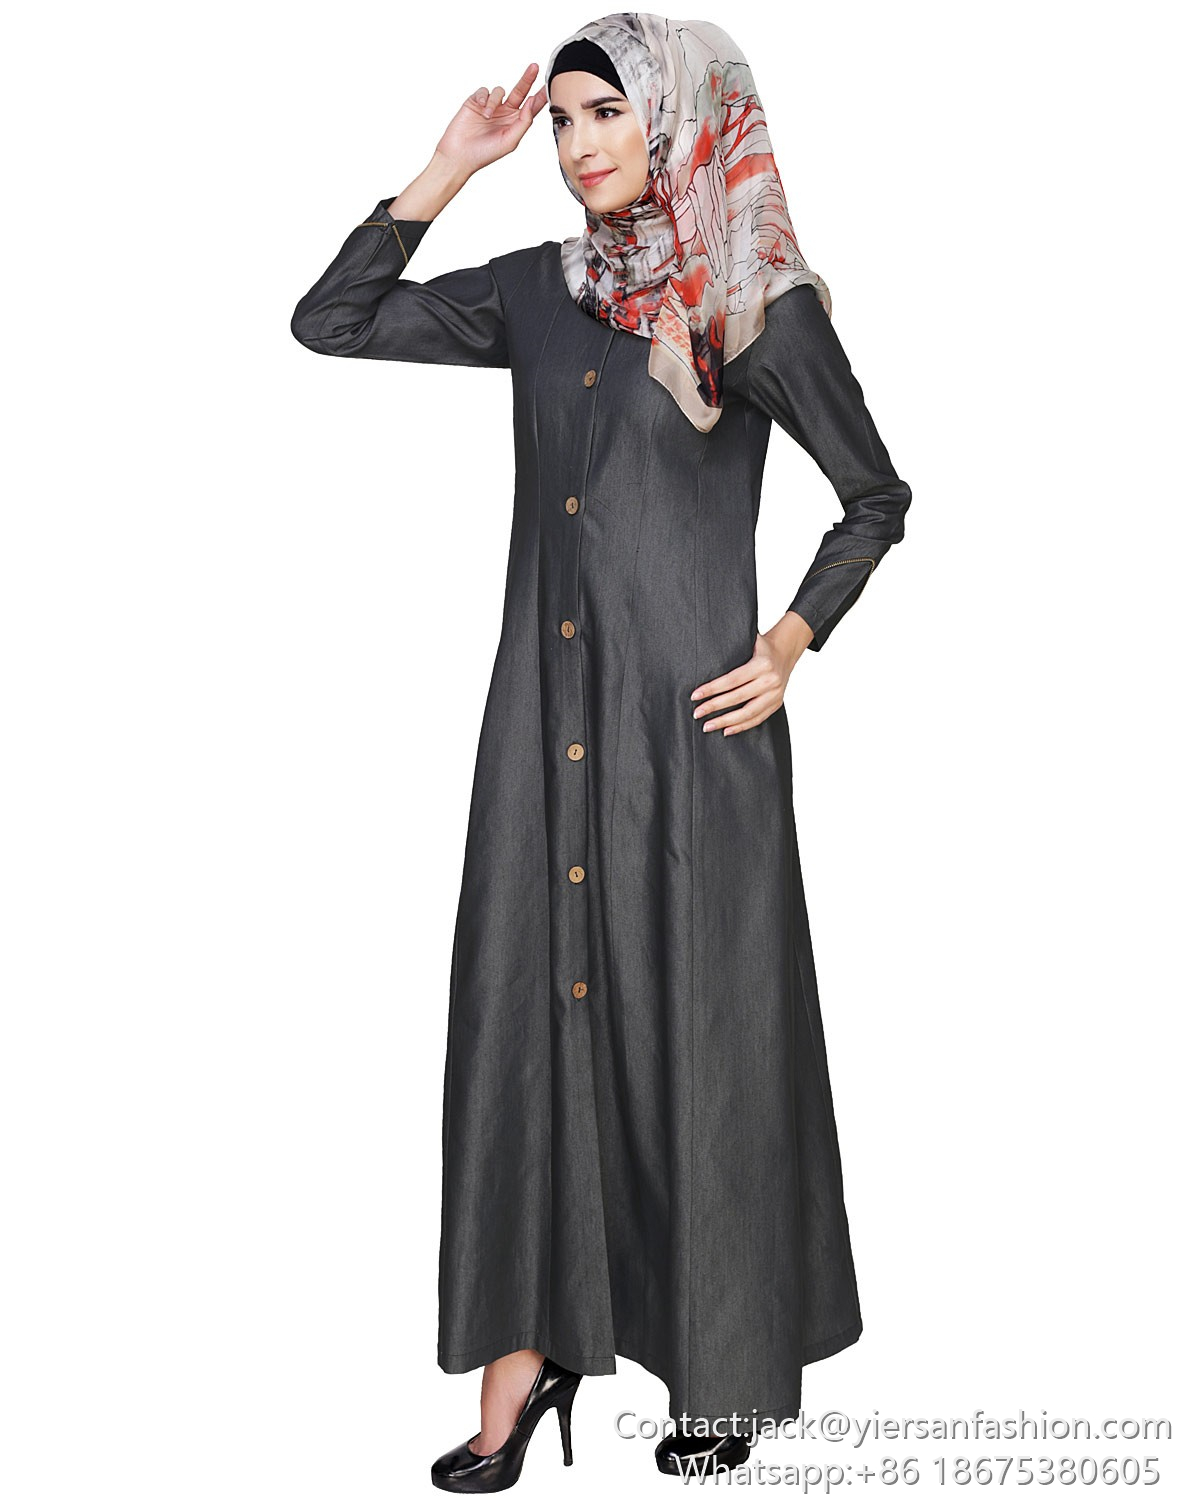 New Model O Neck Single Breasted Long Sleeves Slim Abaya Long Dresses For Muslim Women